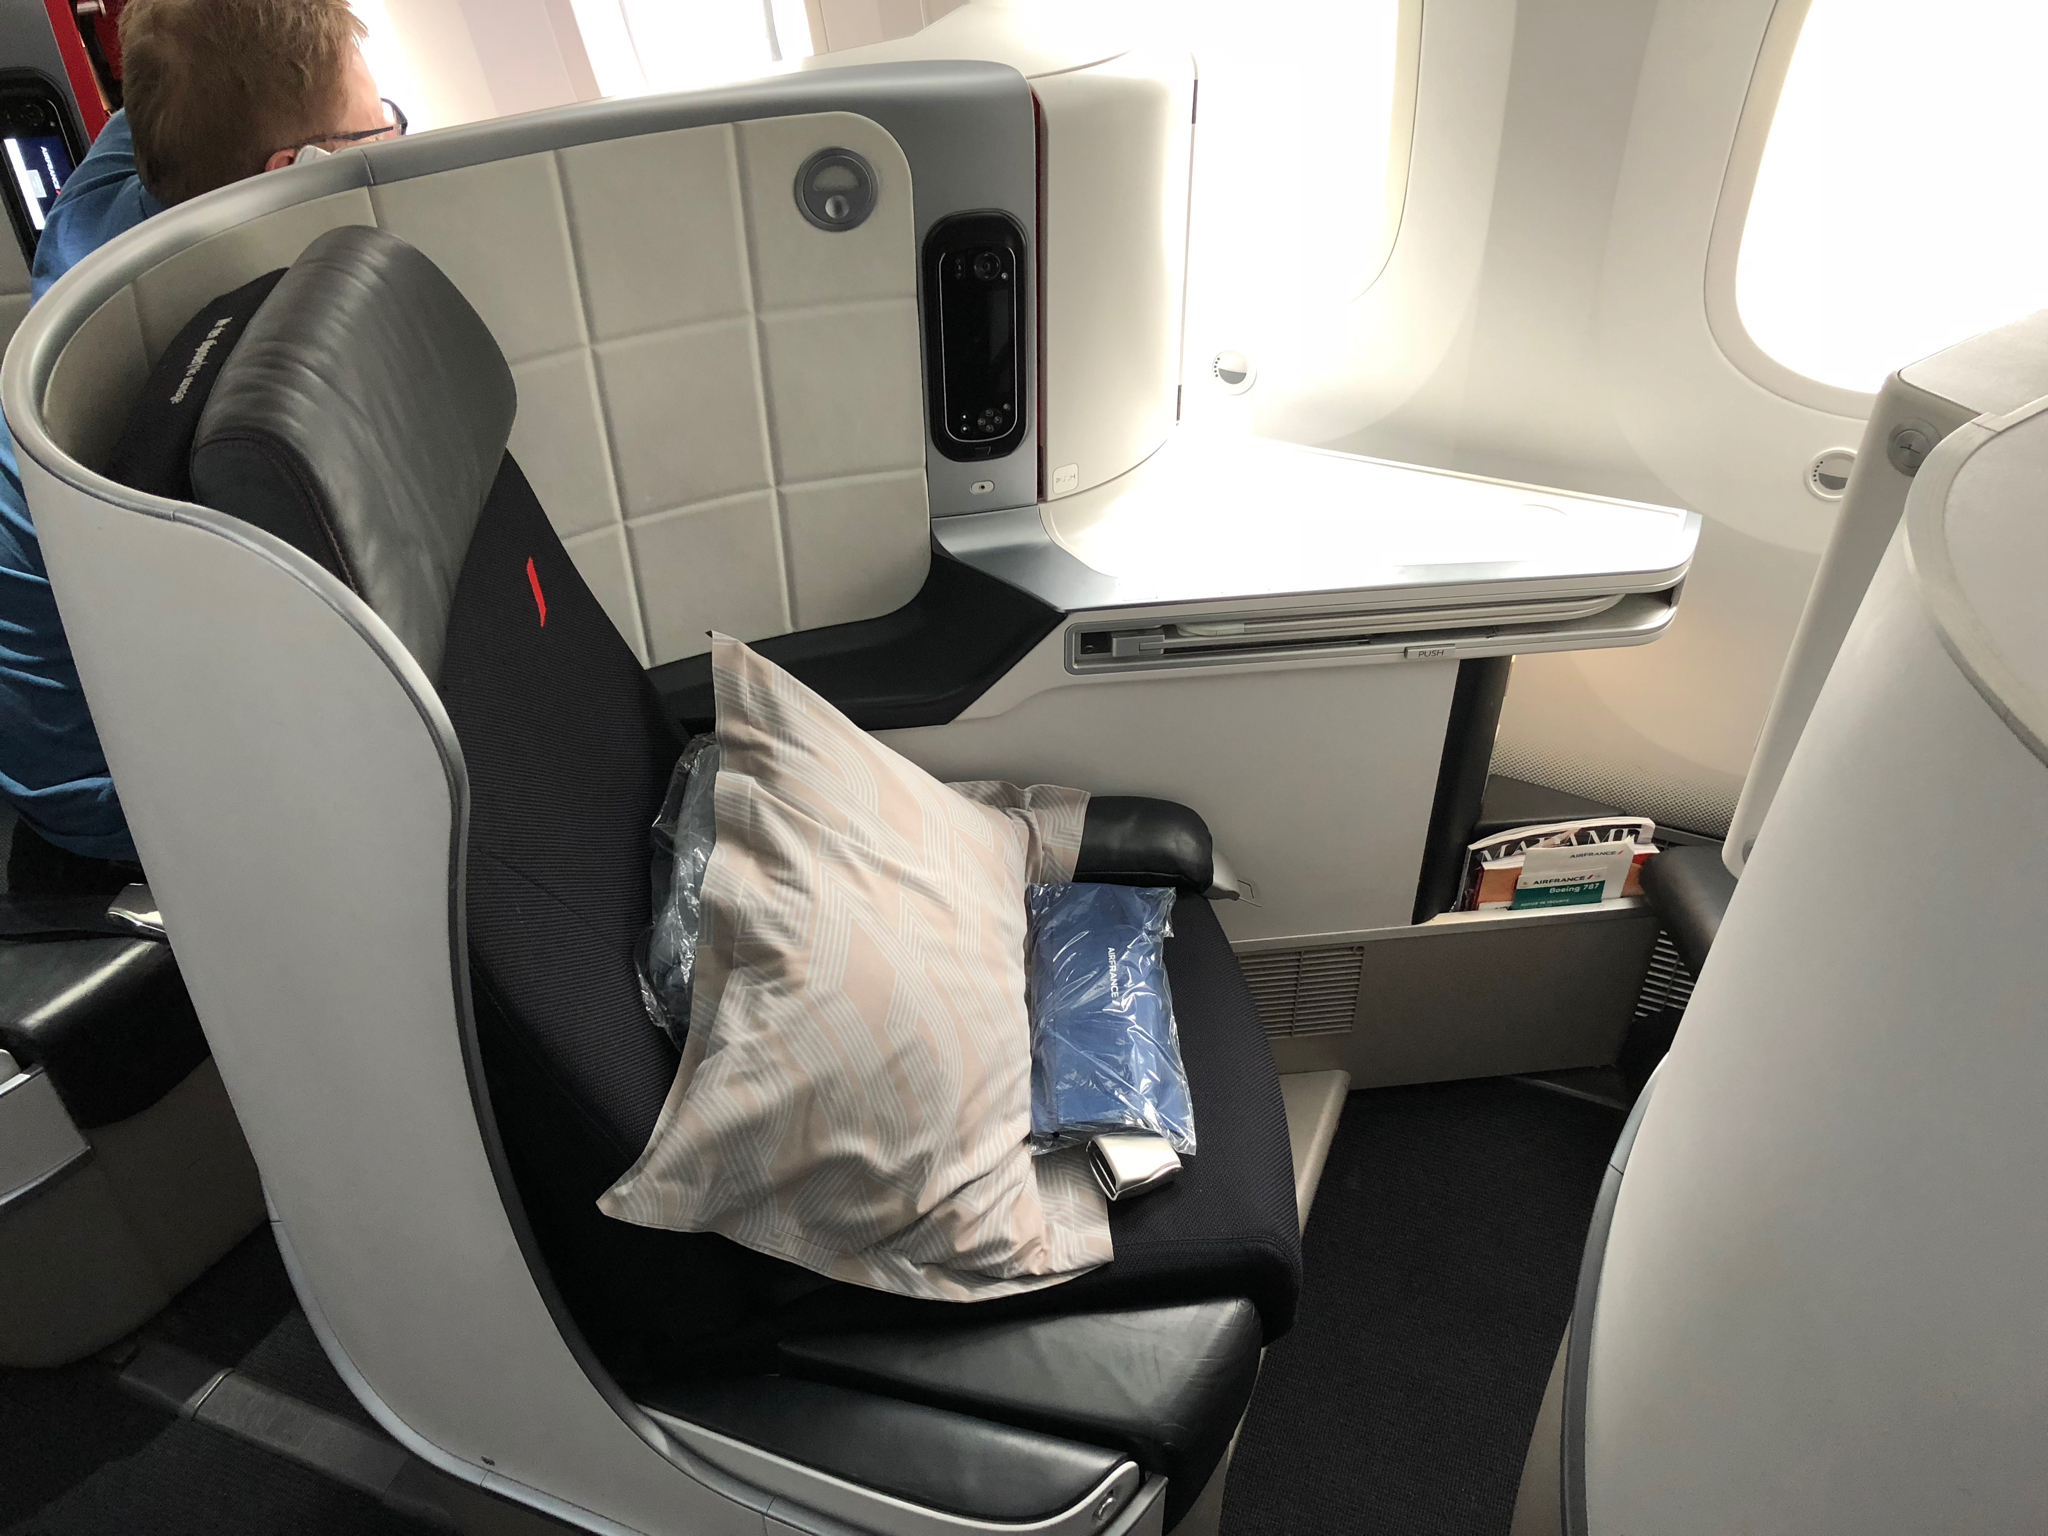 Air France Flight Attendant Cover Letter Air France Business Class Review The Higher Flyer